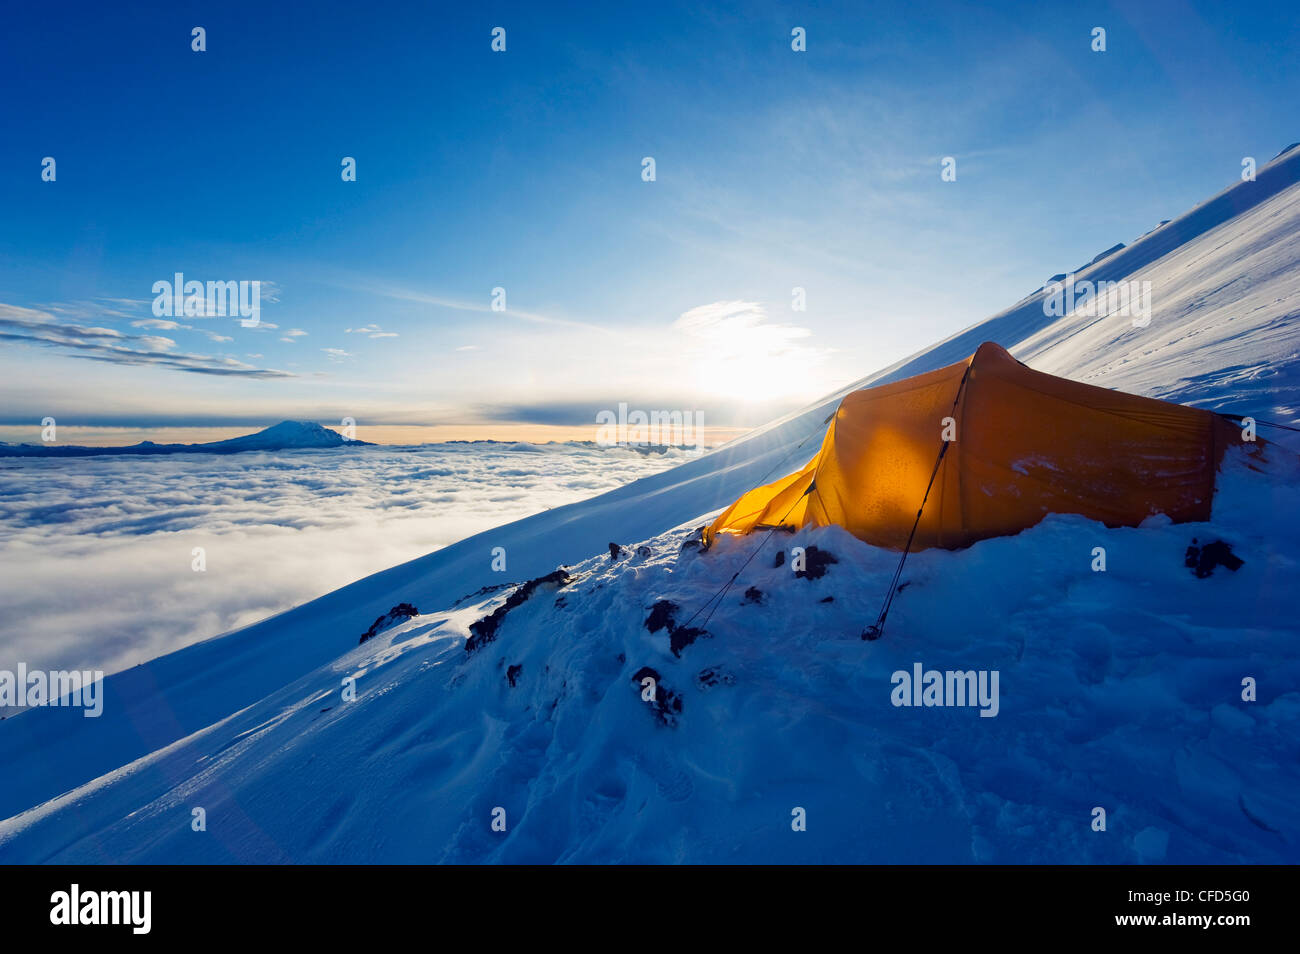 Tent on Volcan Cotopaxi, 5897m, highest active volcano in the world, Ecuador, South America - Stock Image